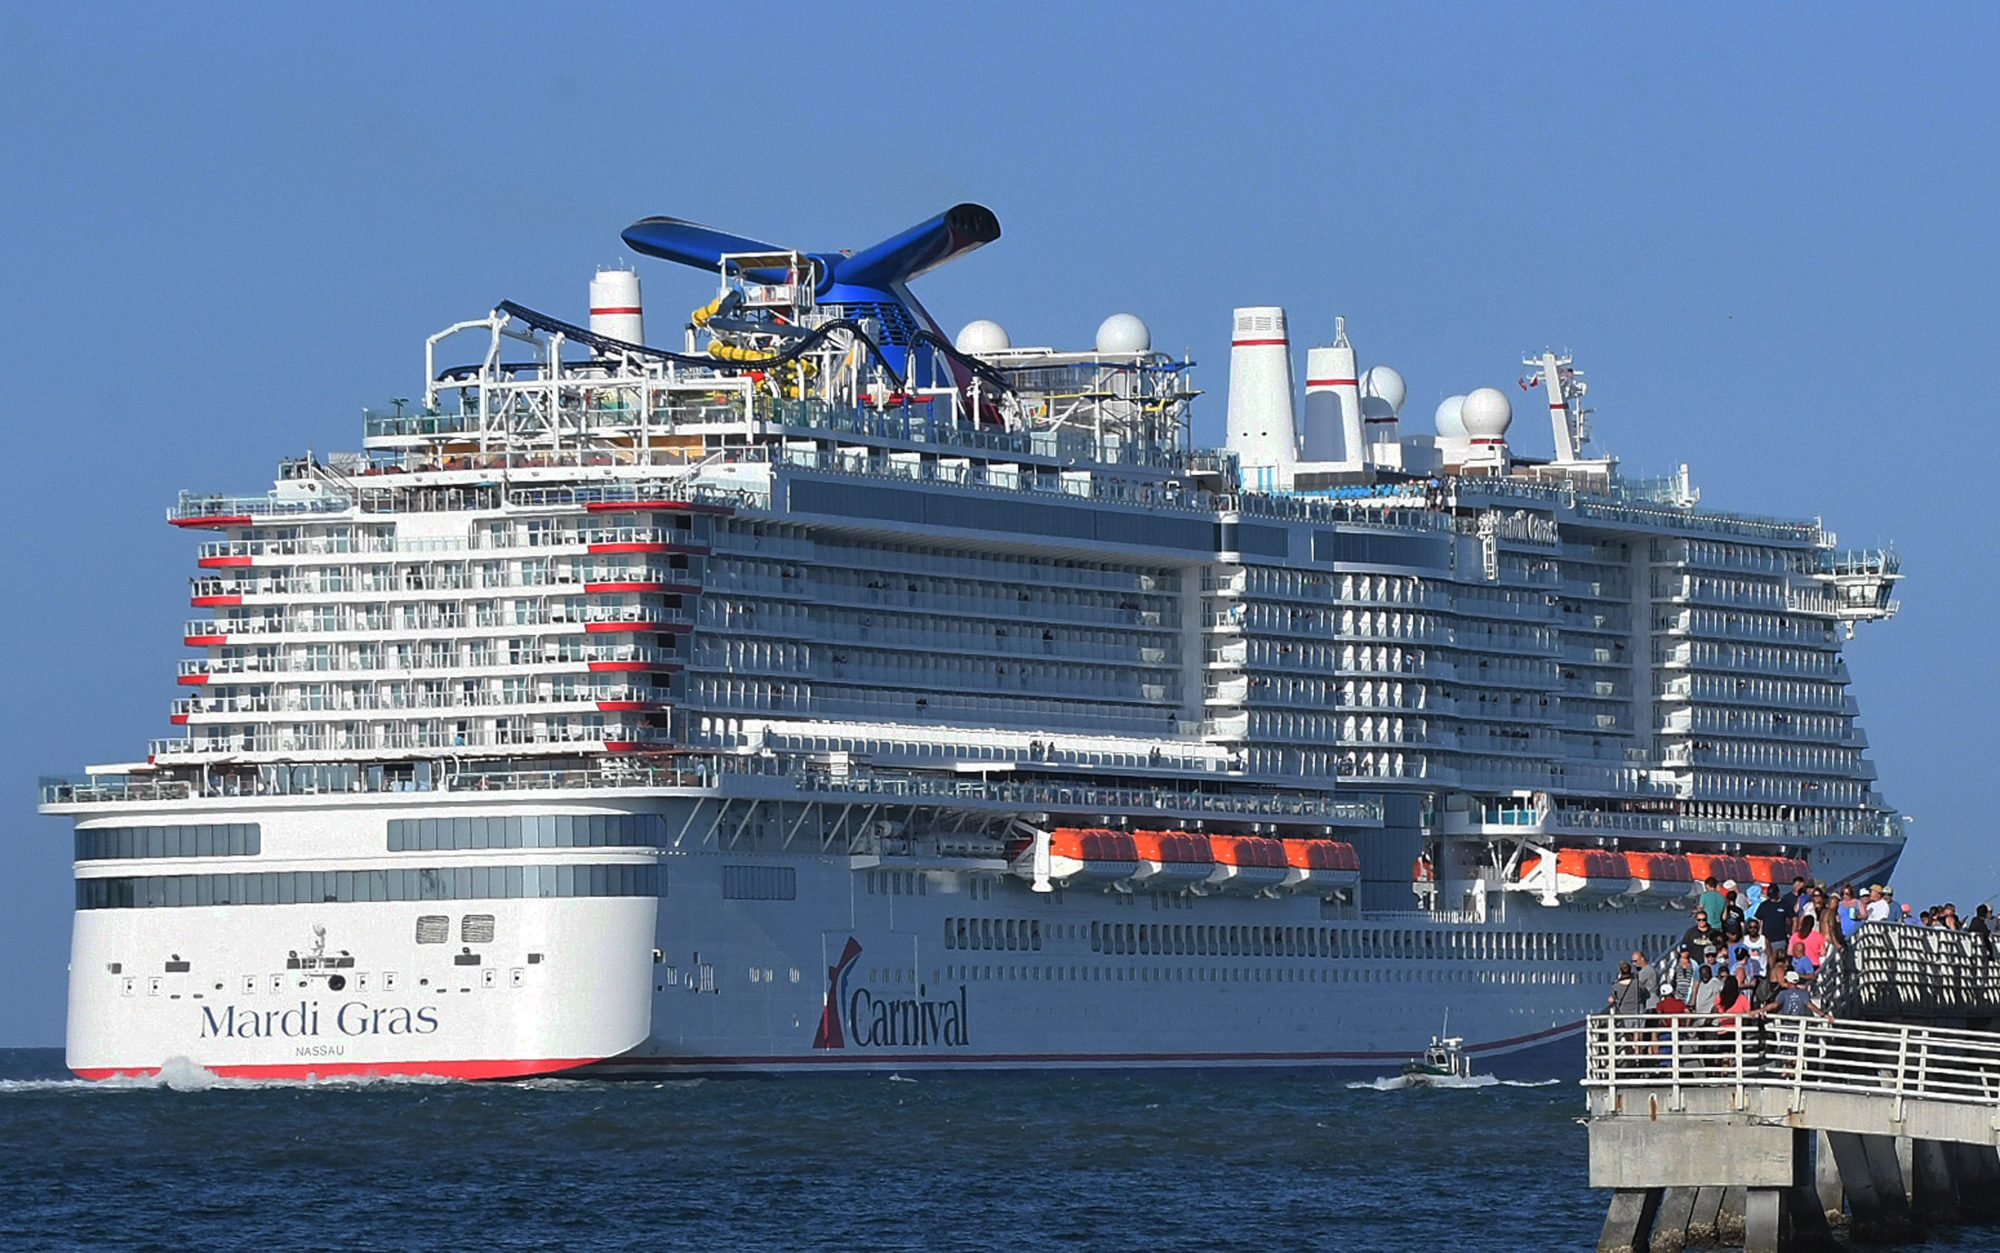 Carnival Mardi Gras cruise ship departs from Port Canaveral